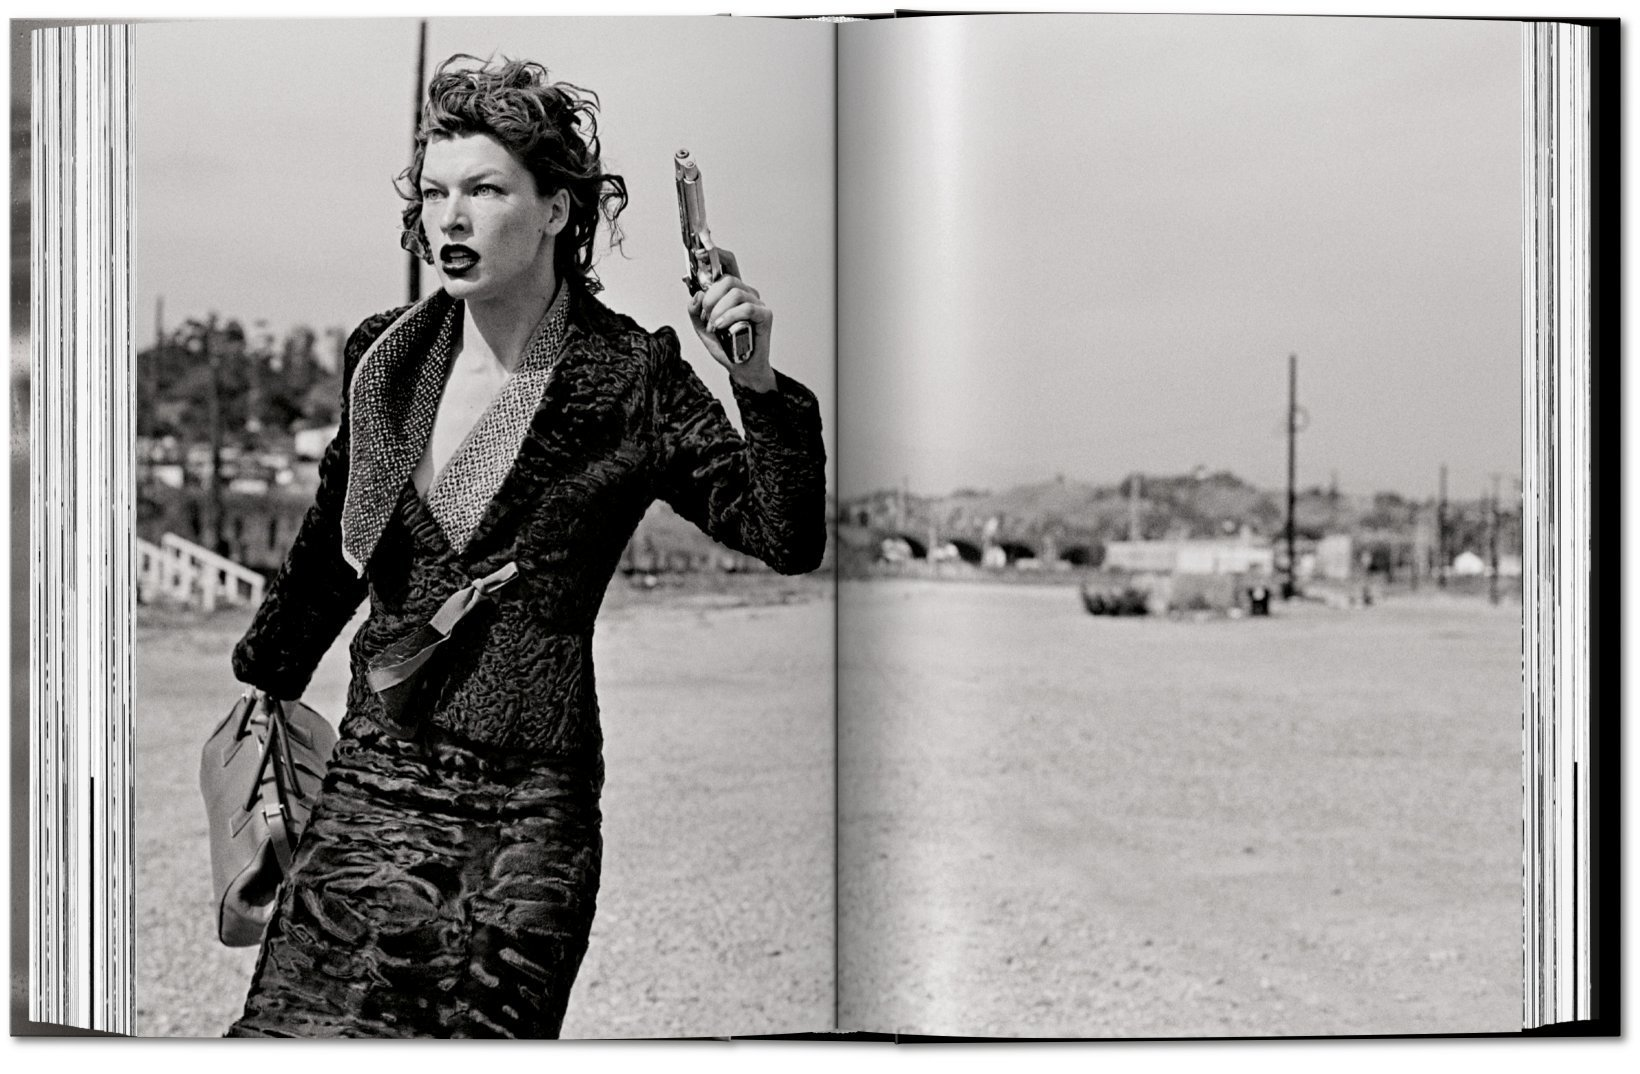 Buch, Peter Lindbergh on Fashion Photography - TASCHEN - Bild 6